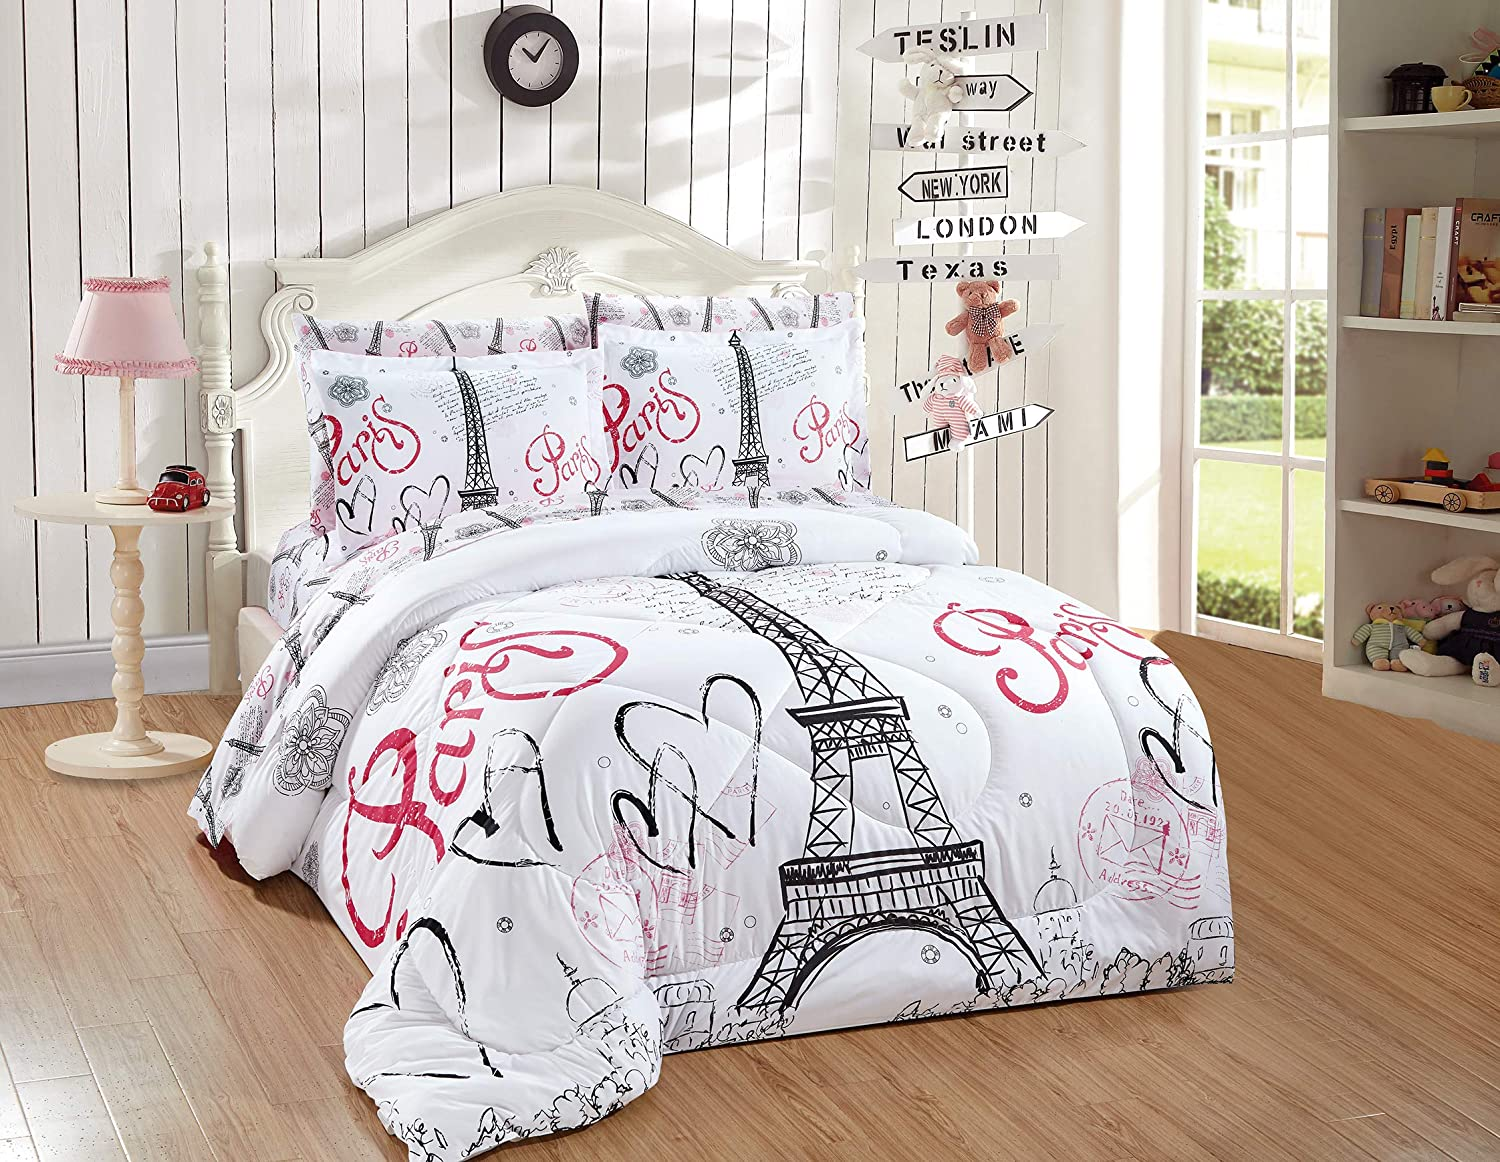 Better Home Style White Black Pink Paris Eiffel Tower Bonjour Design 5 Piece Comforter Bedding Set Bed in a Bag with Complete Sheet Set # FS Paris White (Twin)